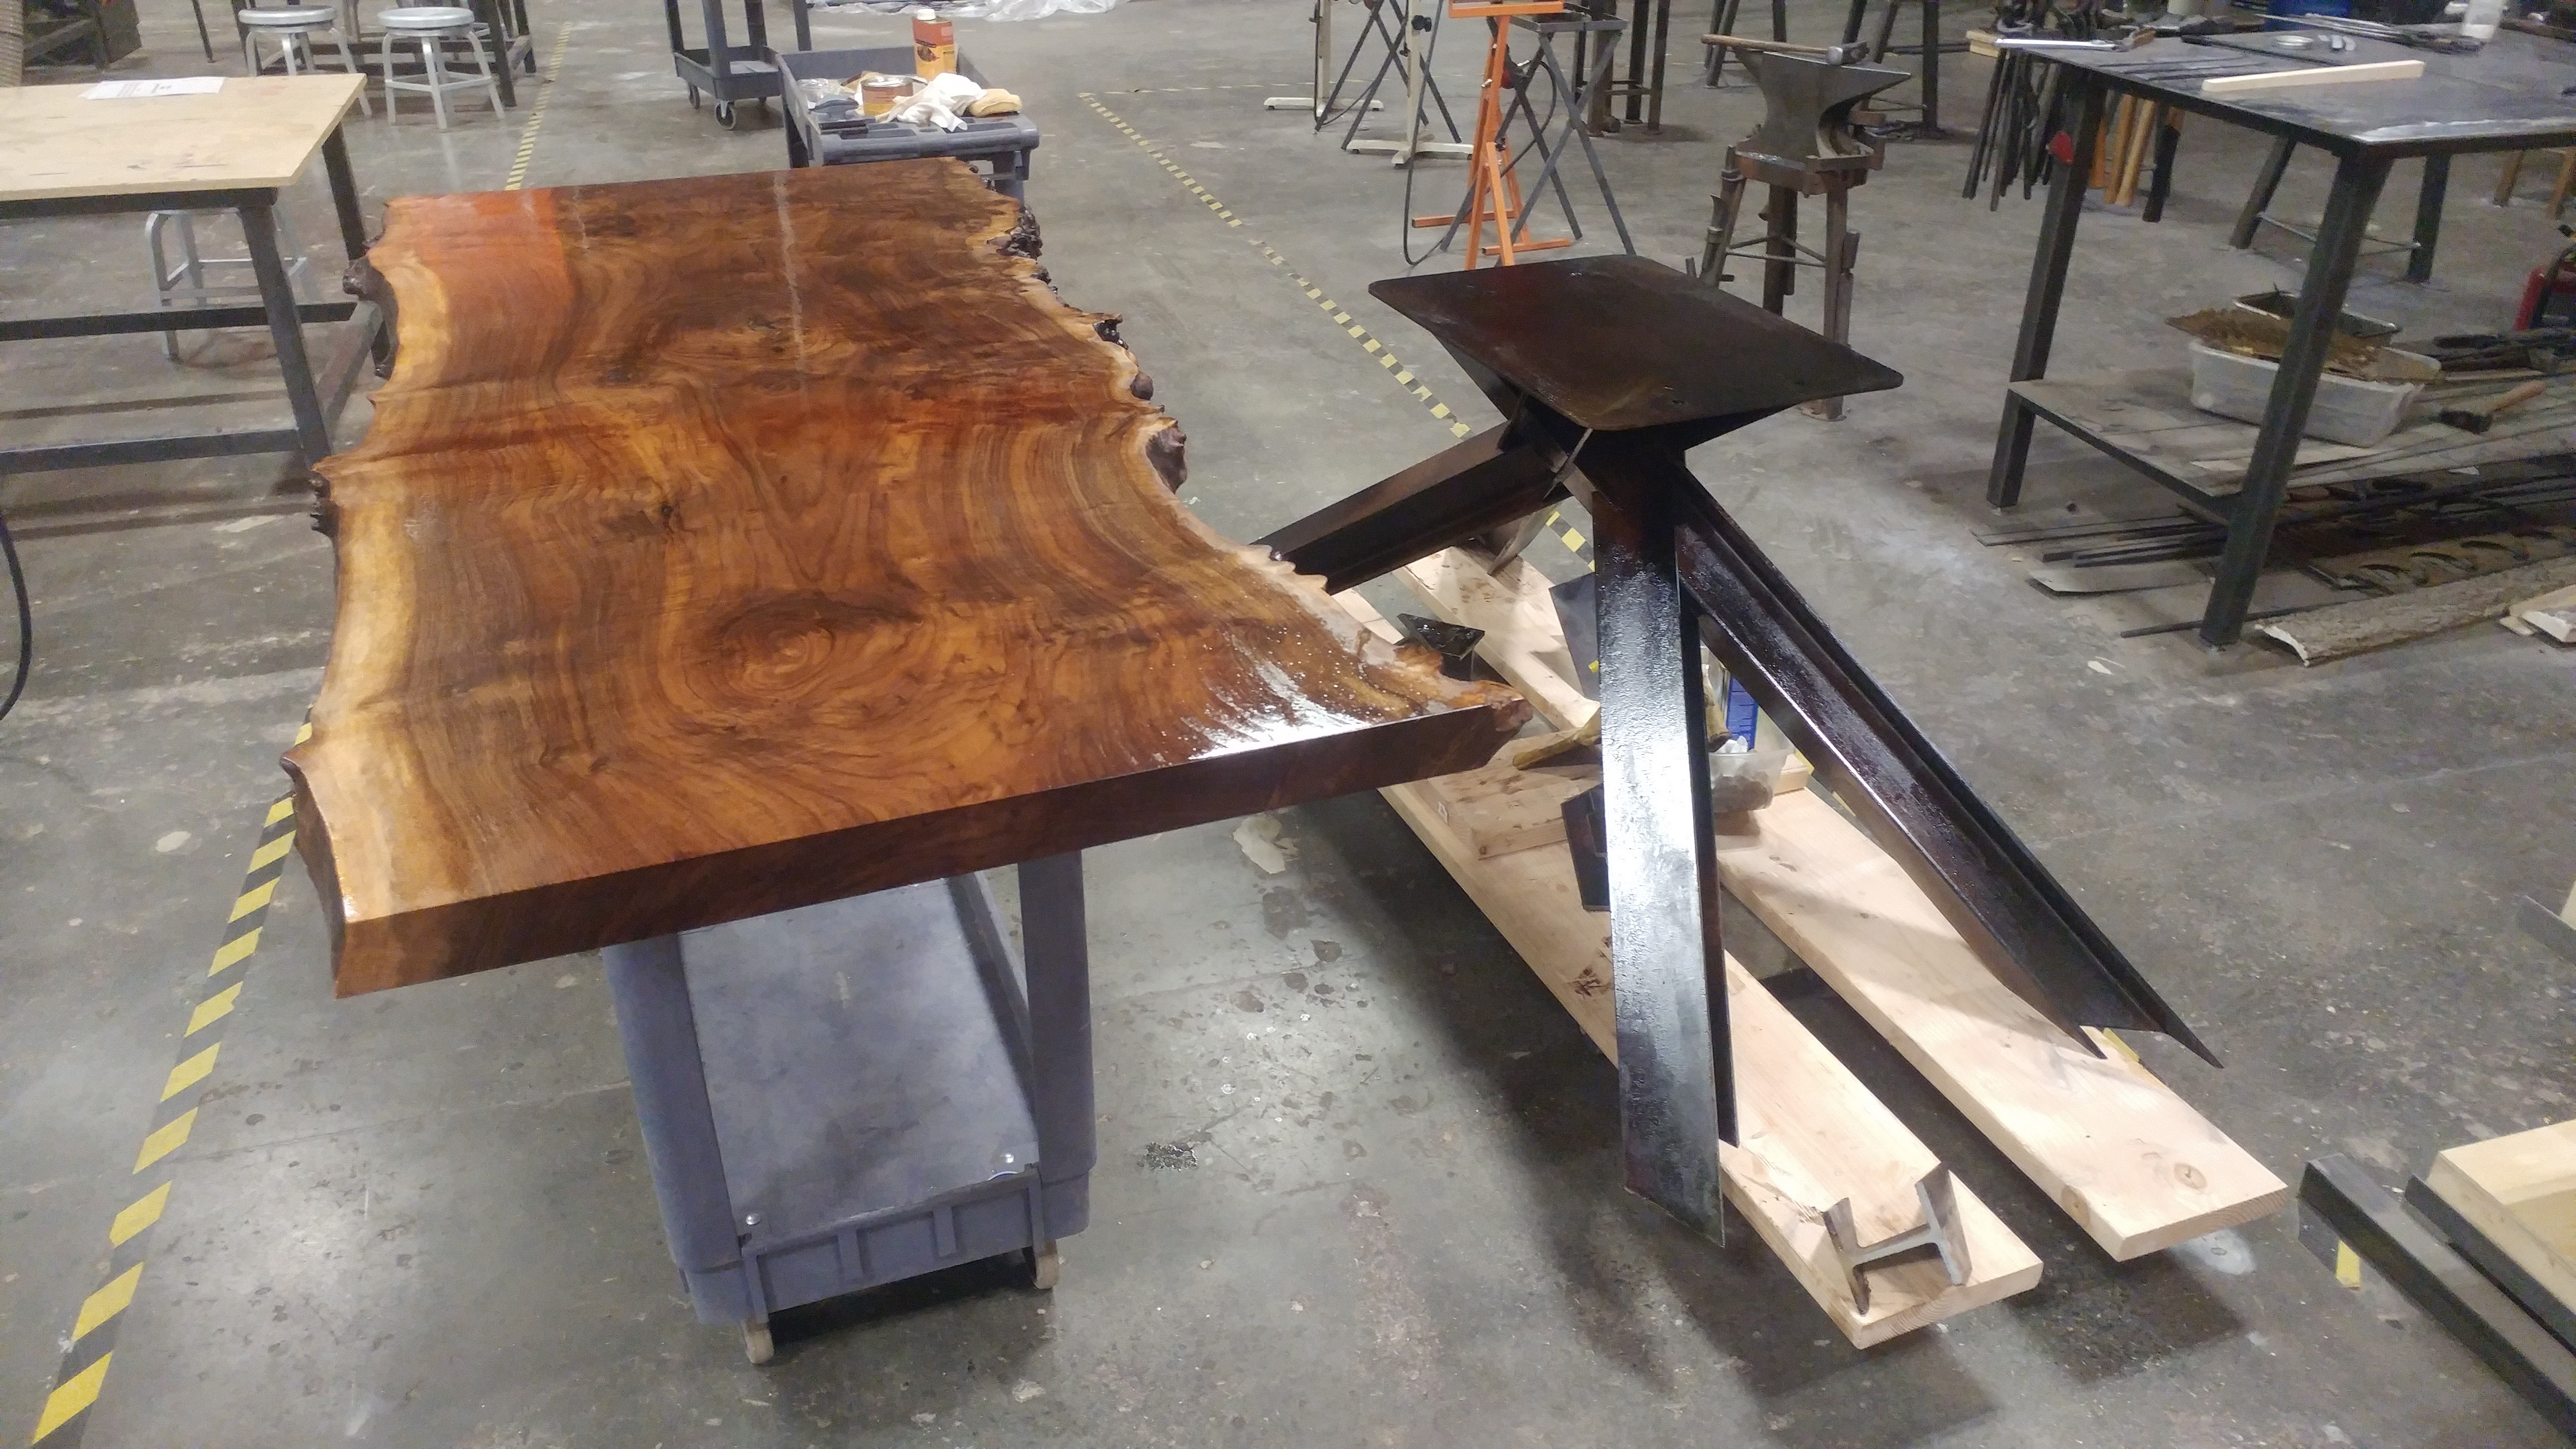 The two halves of the table project about to come together